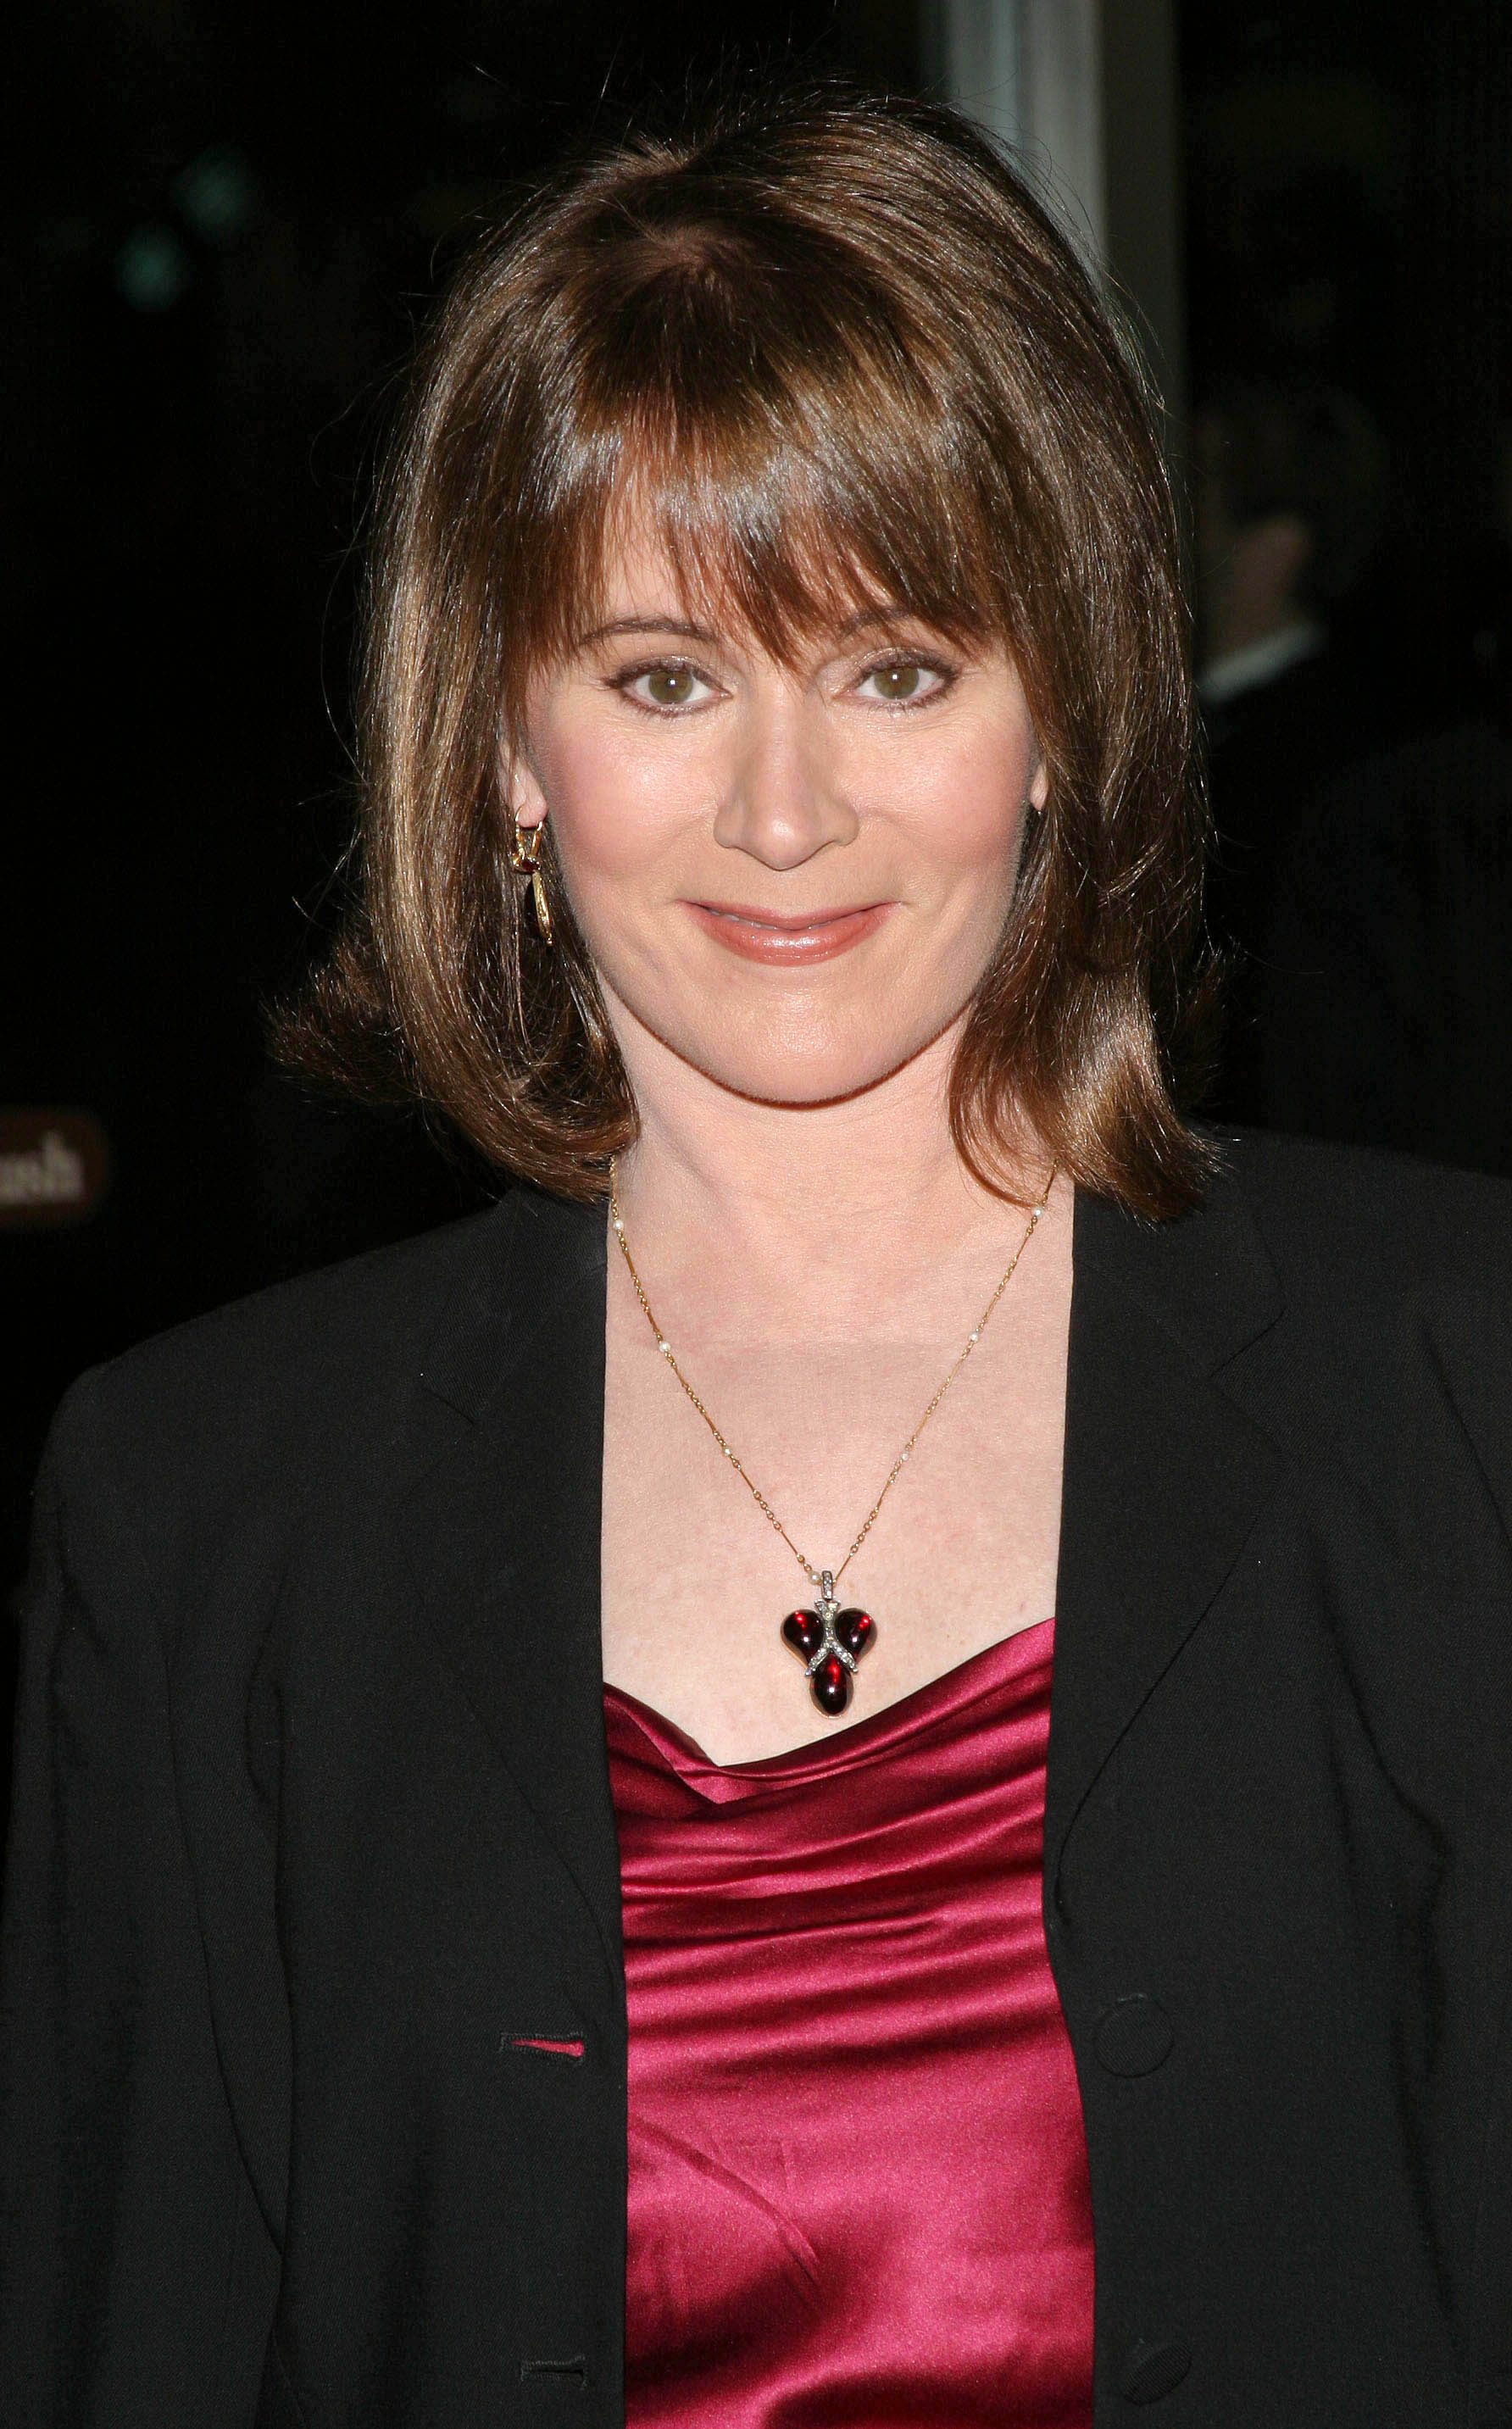 patricia richardson instagram